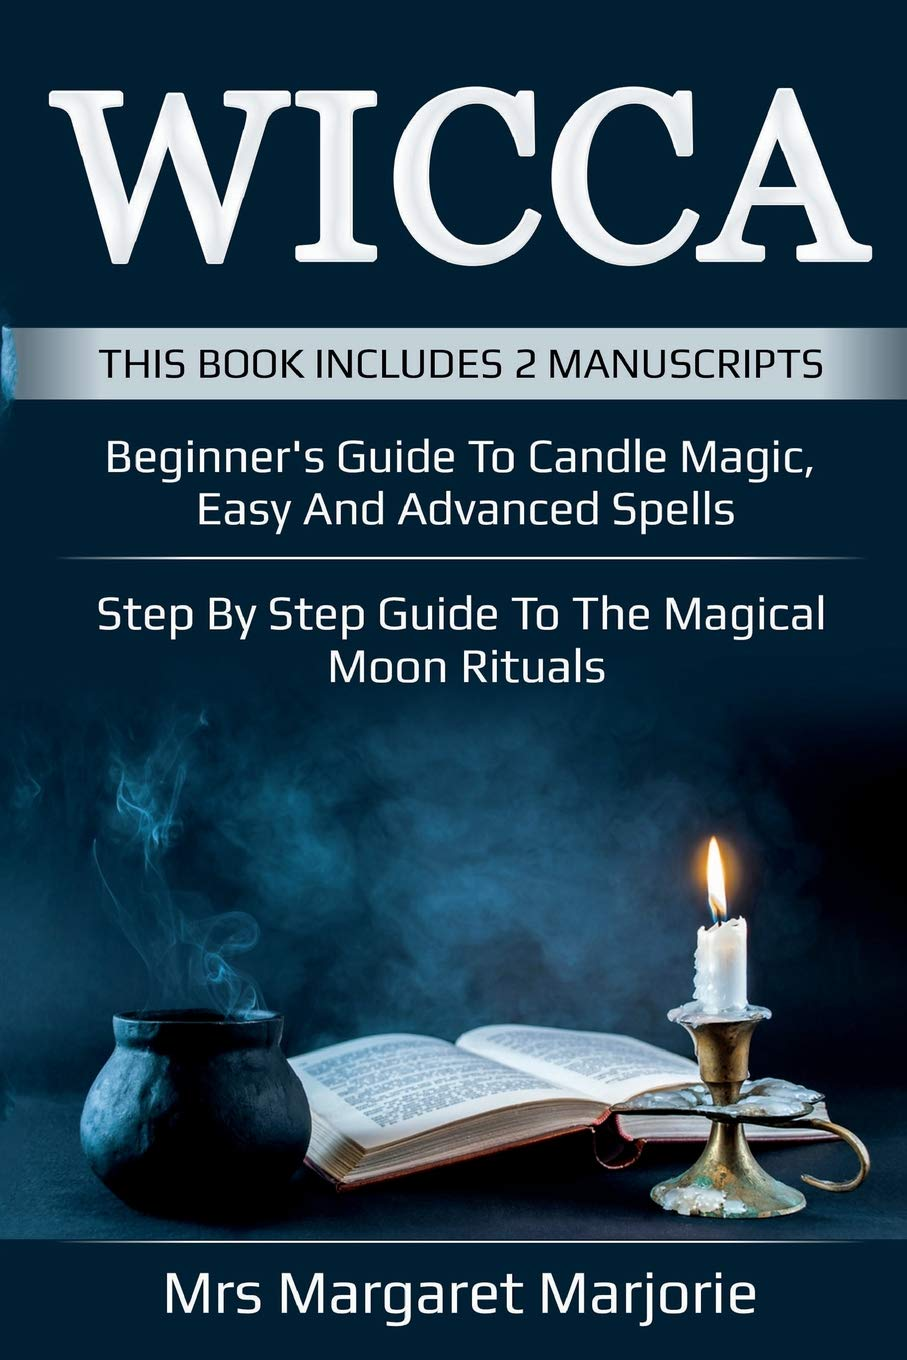 Wicca: This Book Includes 2 Manuscripts - Beginner's Guide To Candle Magic,  Easy And Advanced Spells, Step By Step Guide To The Magical Moon Rituals  (Volume ...